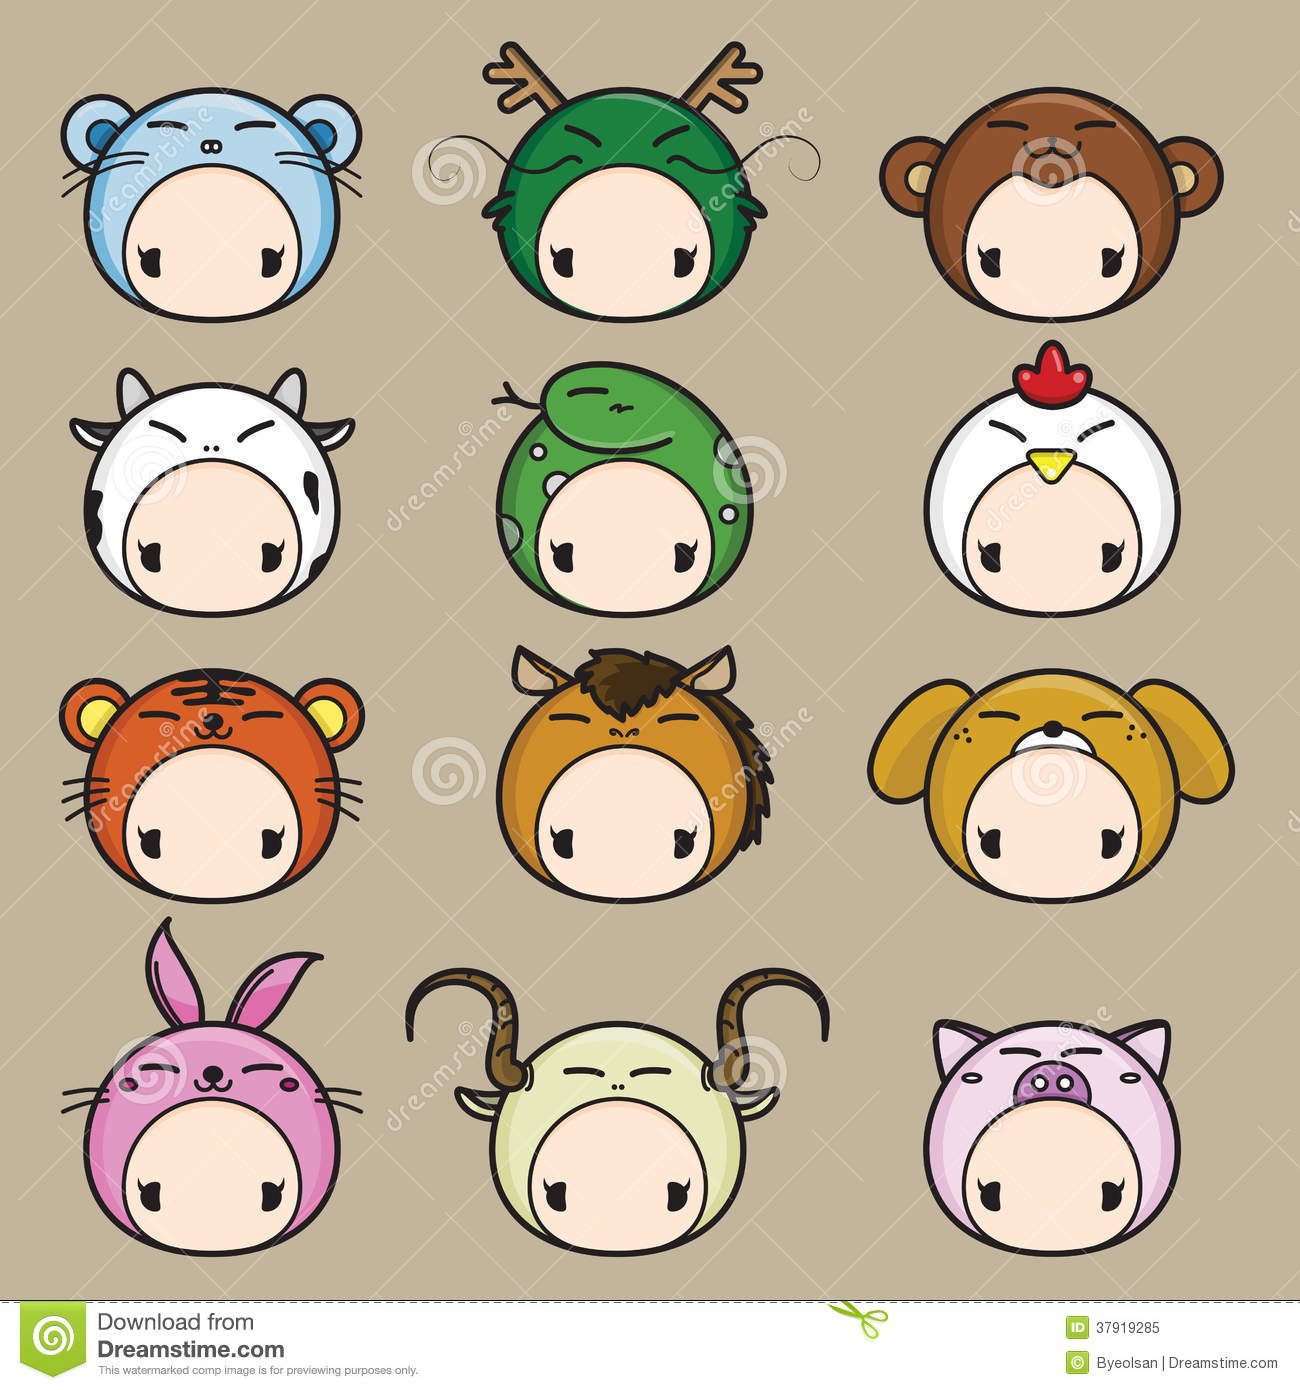 346f2d8a9 Chinese Zodiac. 12 Animals Icon Set. Stock Vector - Illustration of ...